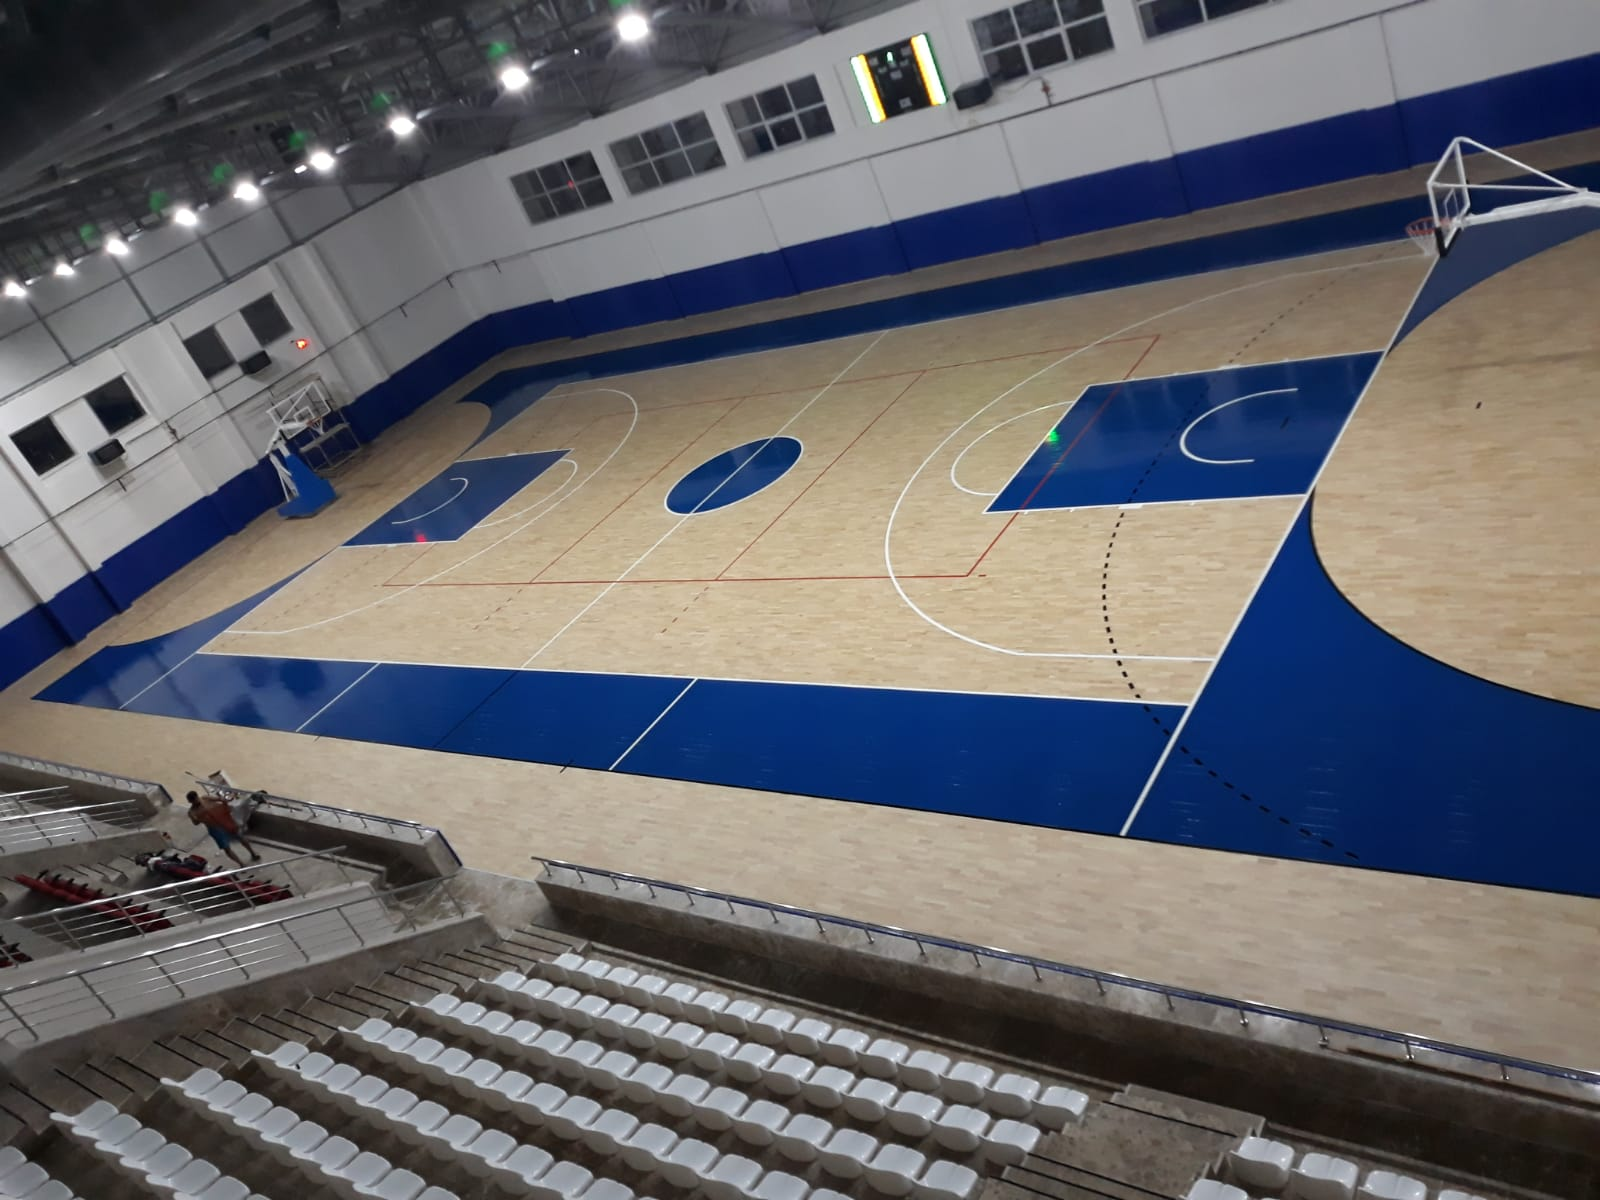 In Turkey a new sports parquet in hevea rubber wood